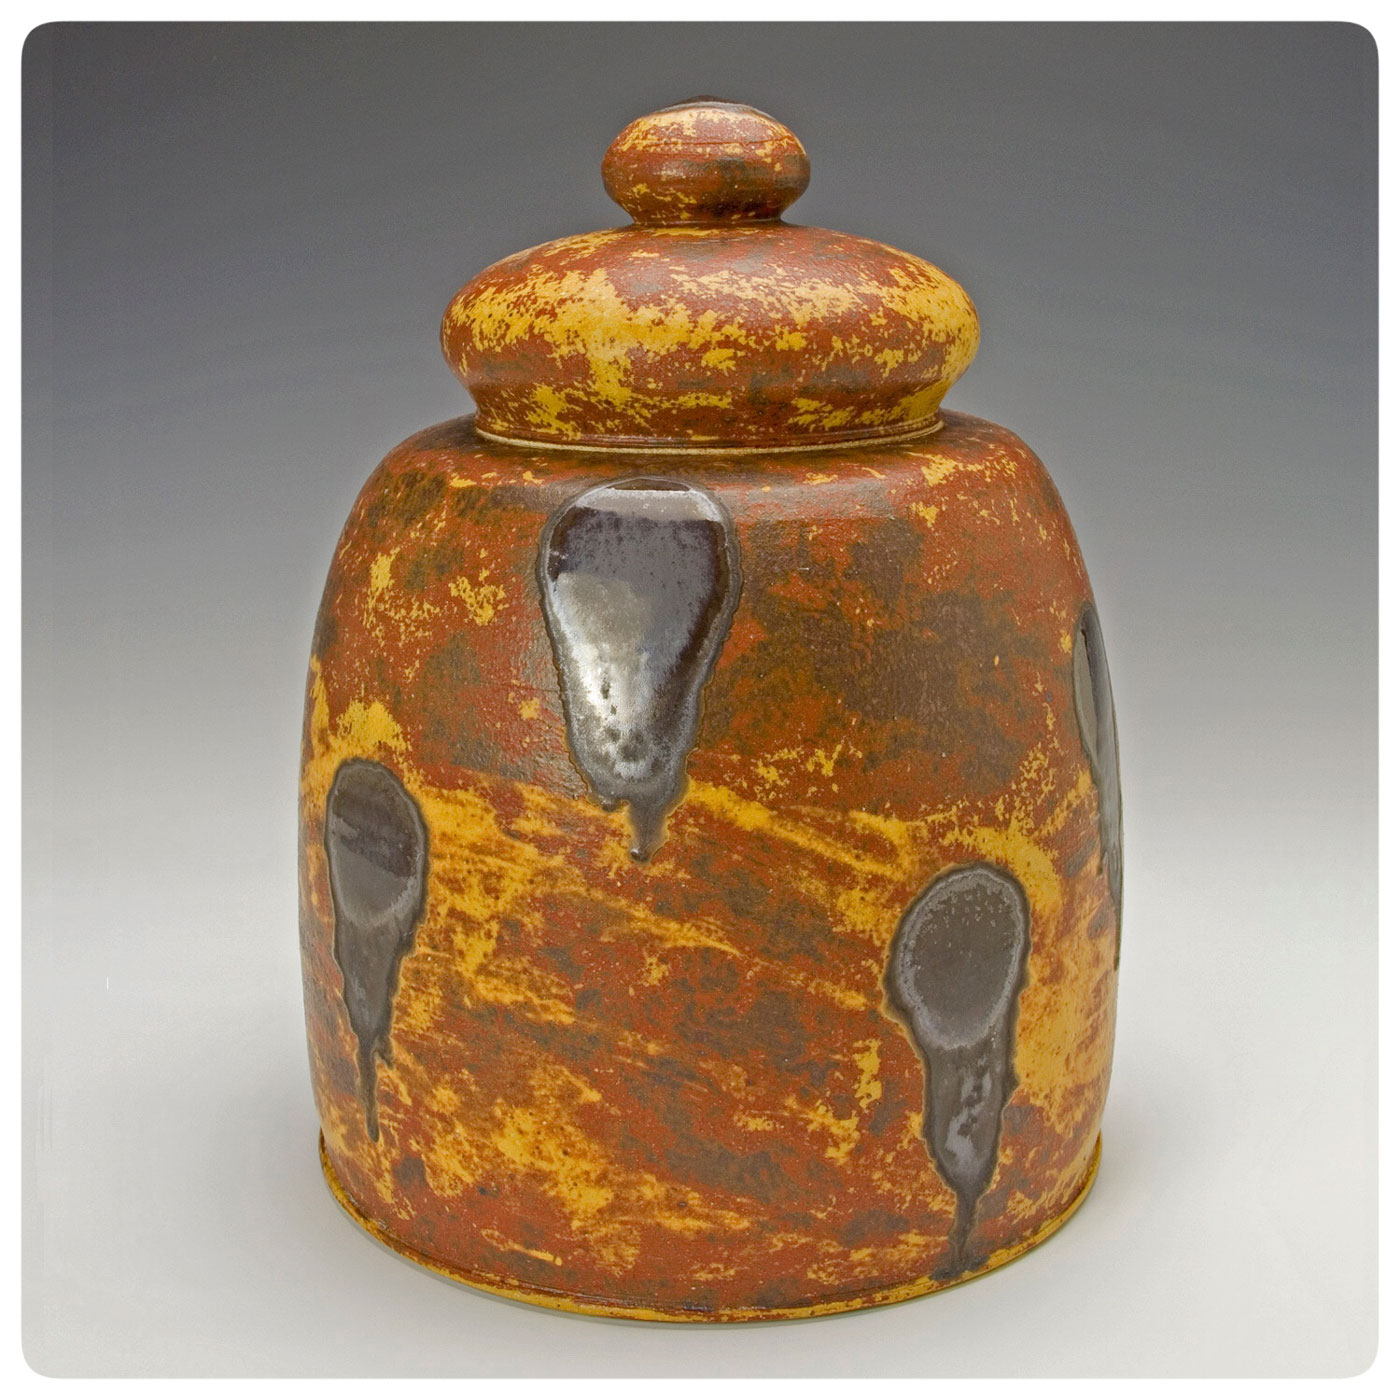 Studio Pottery Covered Jar made by Bruce Gholson, Bulldog Pottery, Seagrove, North Carolina